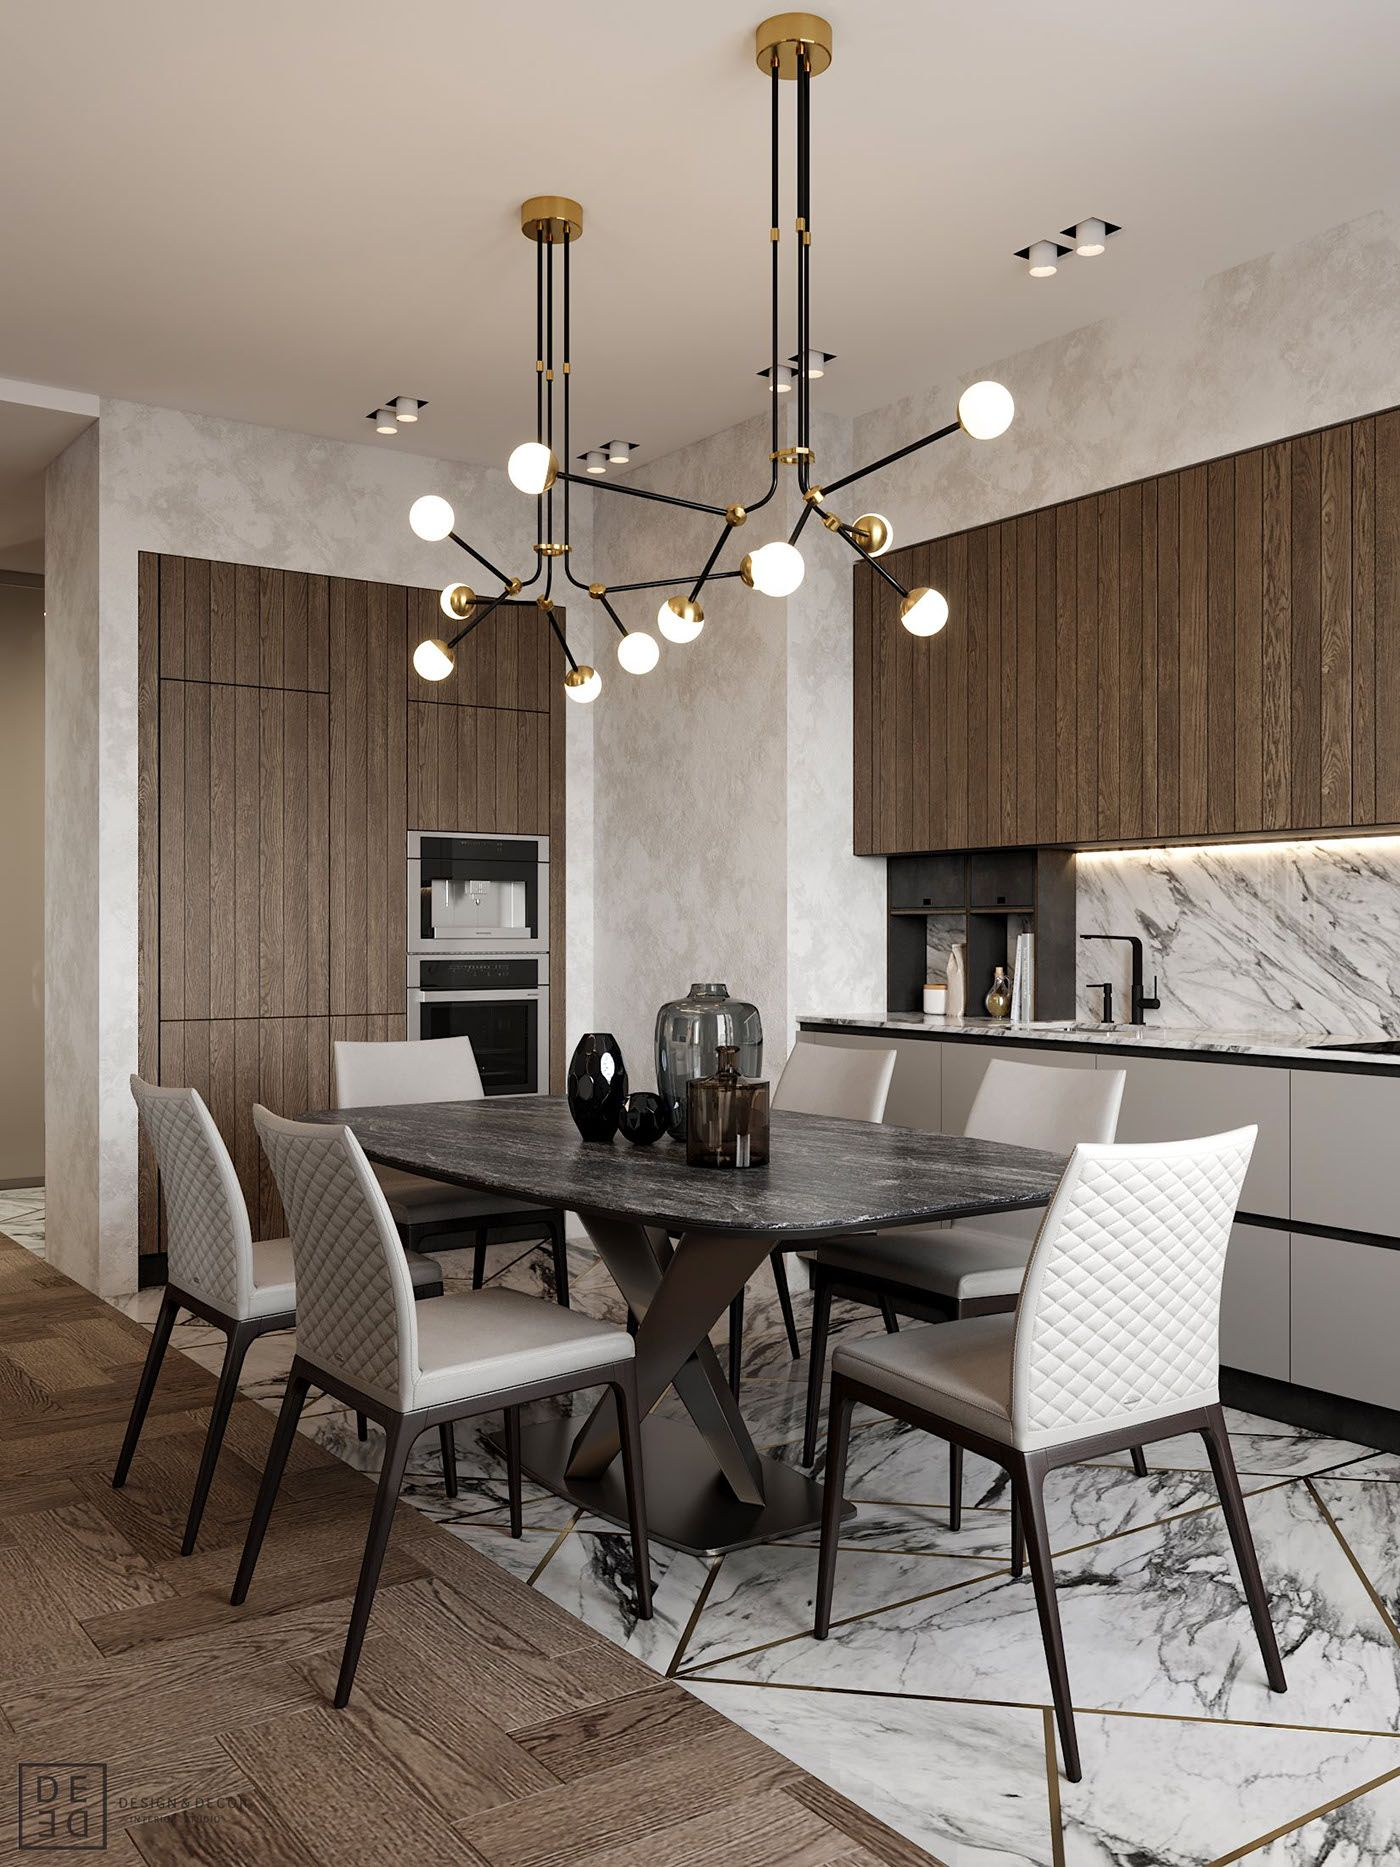 Sophisticated Dining Room Ideas For Your Home Design: DE&DE/Interior With Sophisticated Nature On Behance